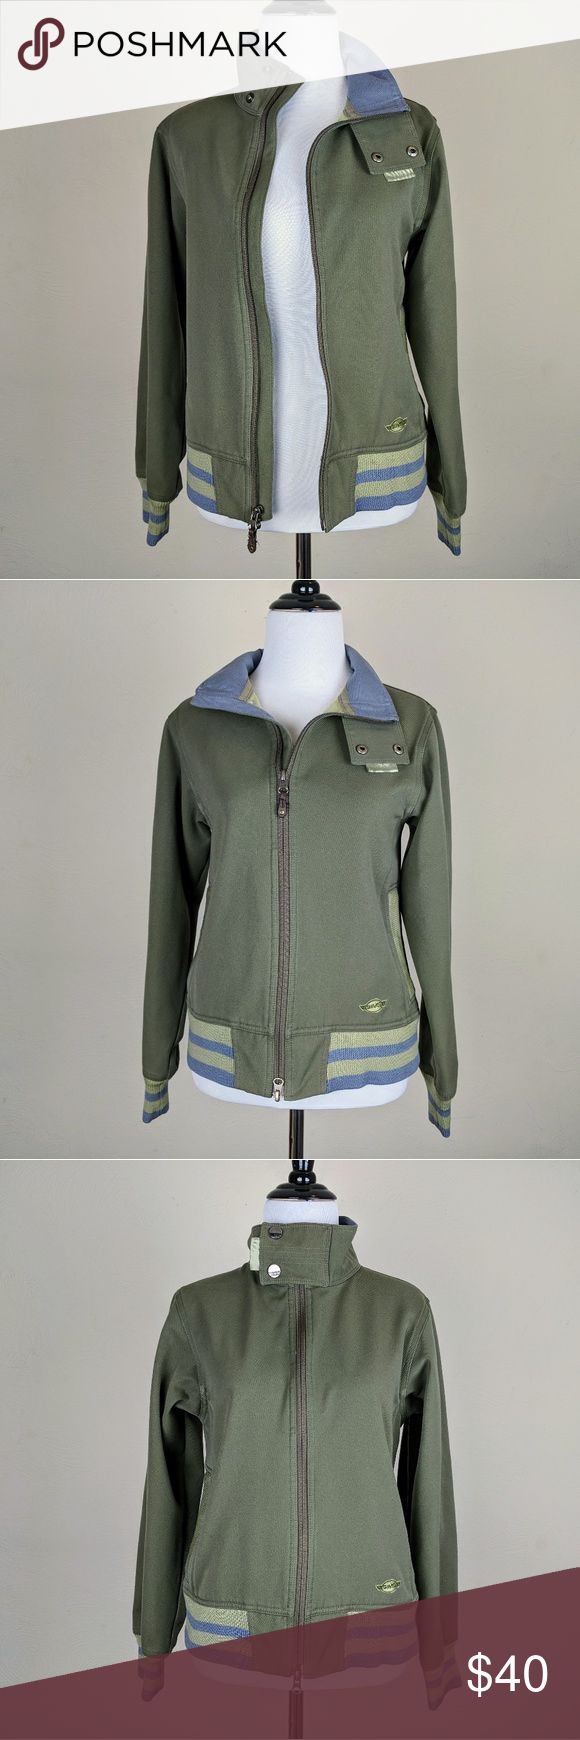 Sims Snowboarding Olive Green Long Sleeve Jacket For sale is a Sims snowboarding jacket. This is a very nice quality jacket for outdoor activities. SIMS Jackets & Coats